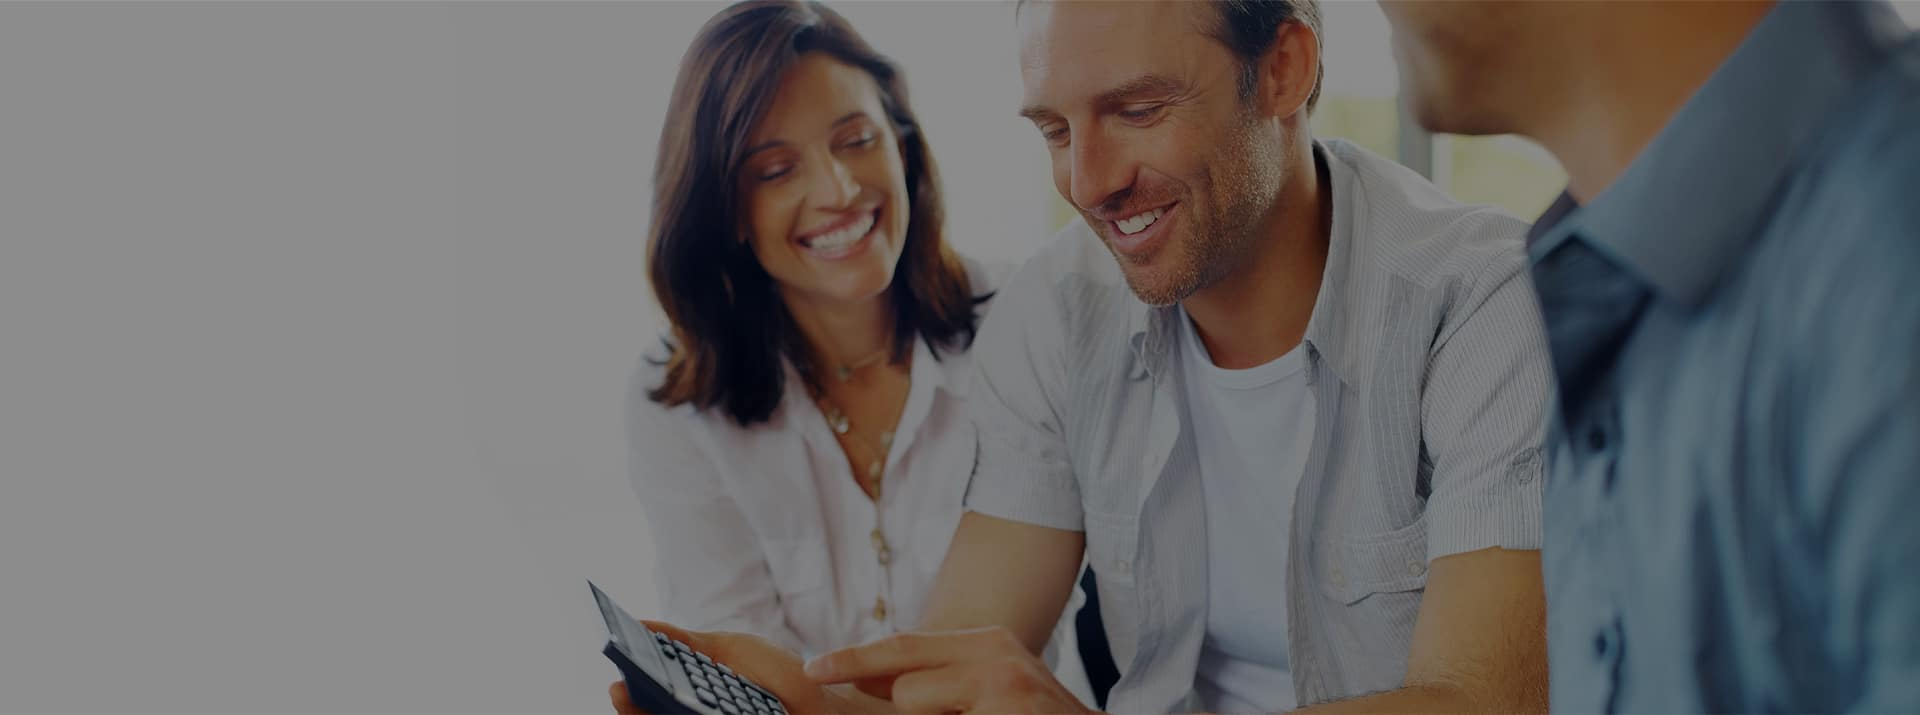 smiling couple looking at calculator